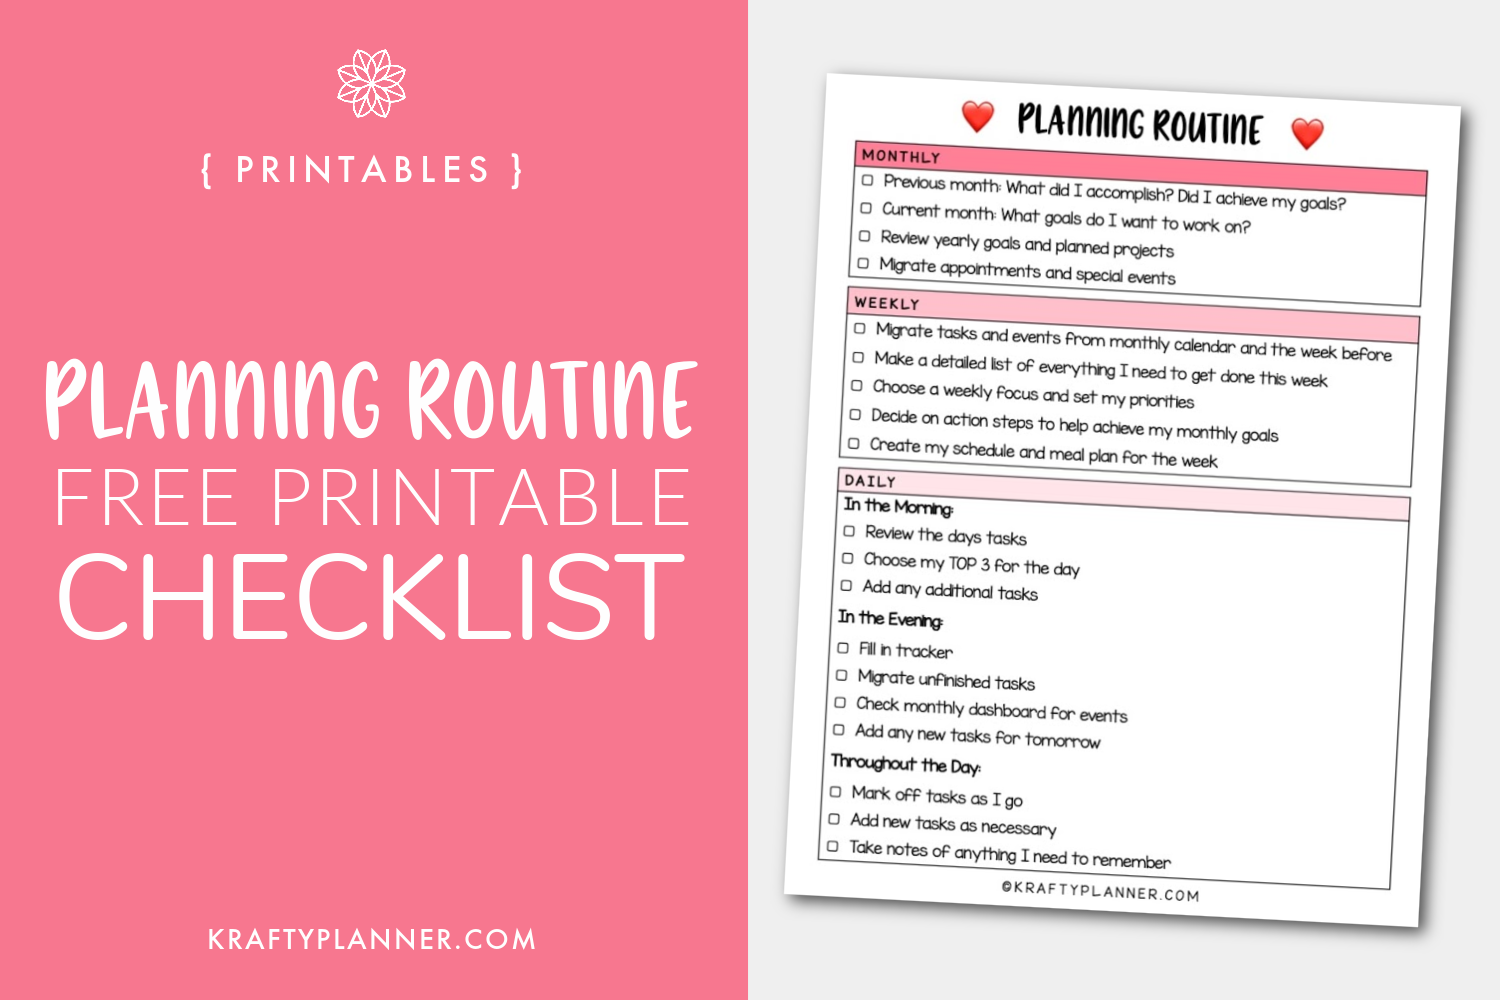 Planning Routine Free Printable Checklist Main Image.png